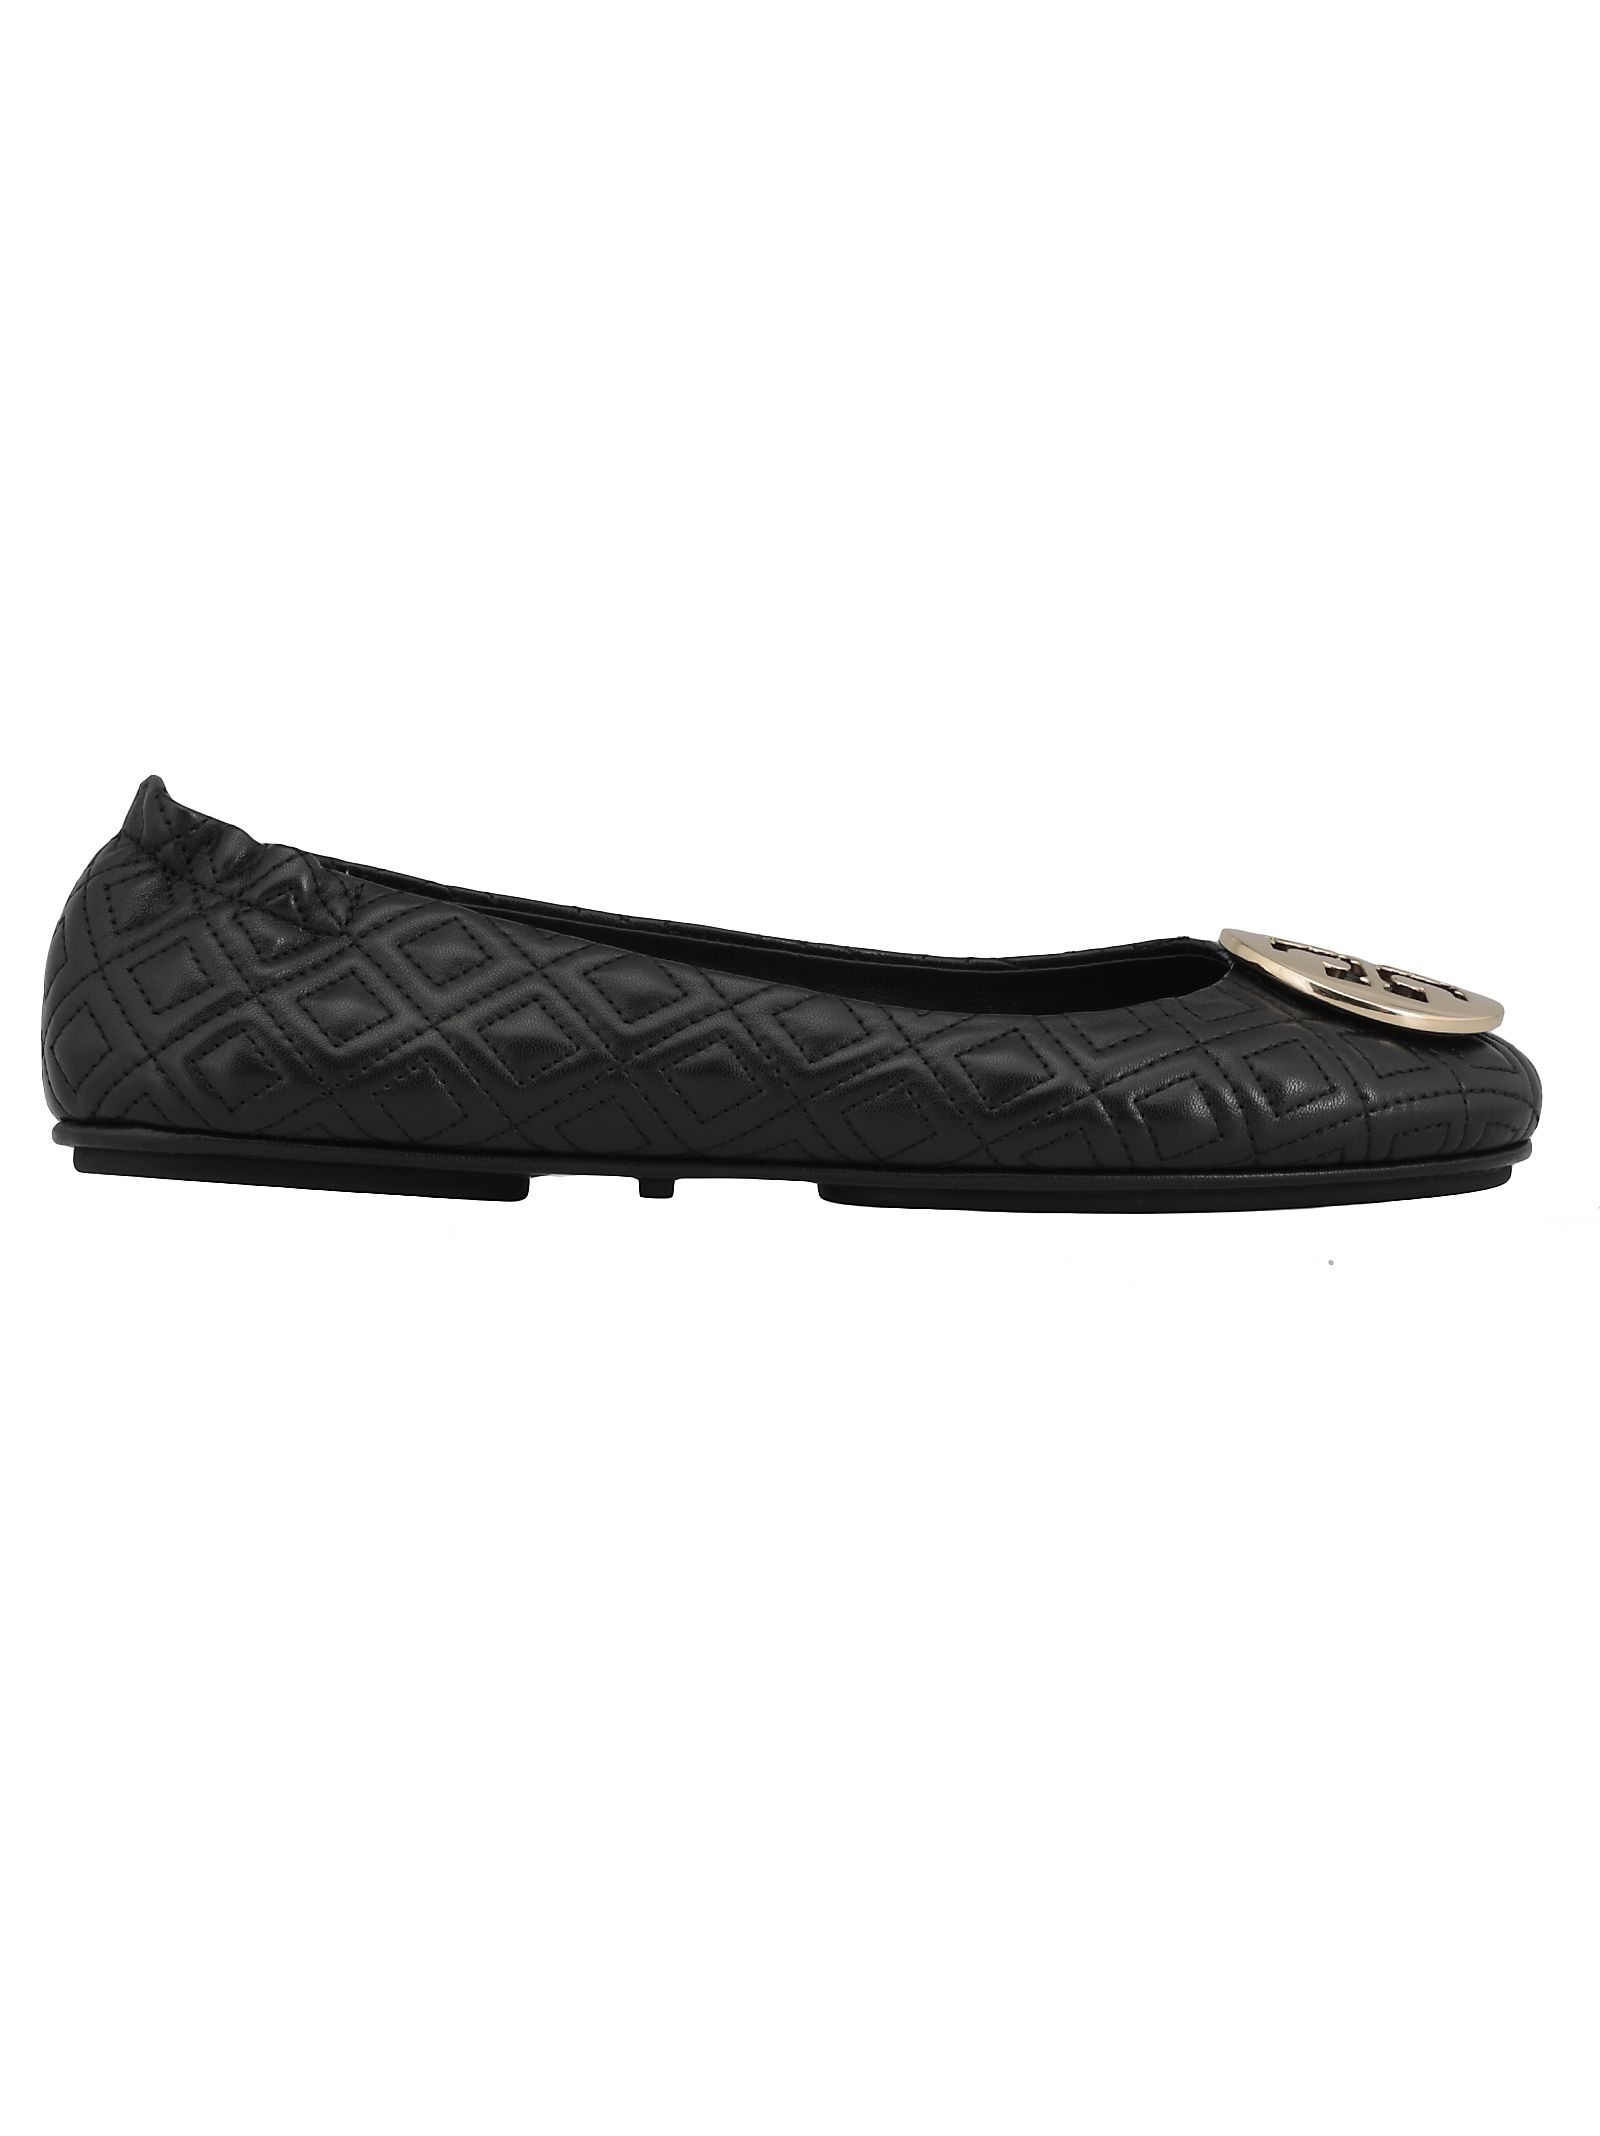 Tory Burch Quilted Minnie Ballet Flat